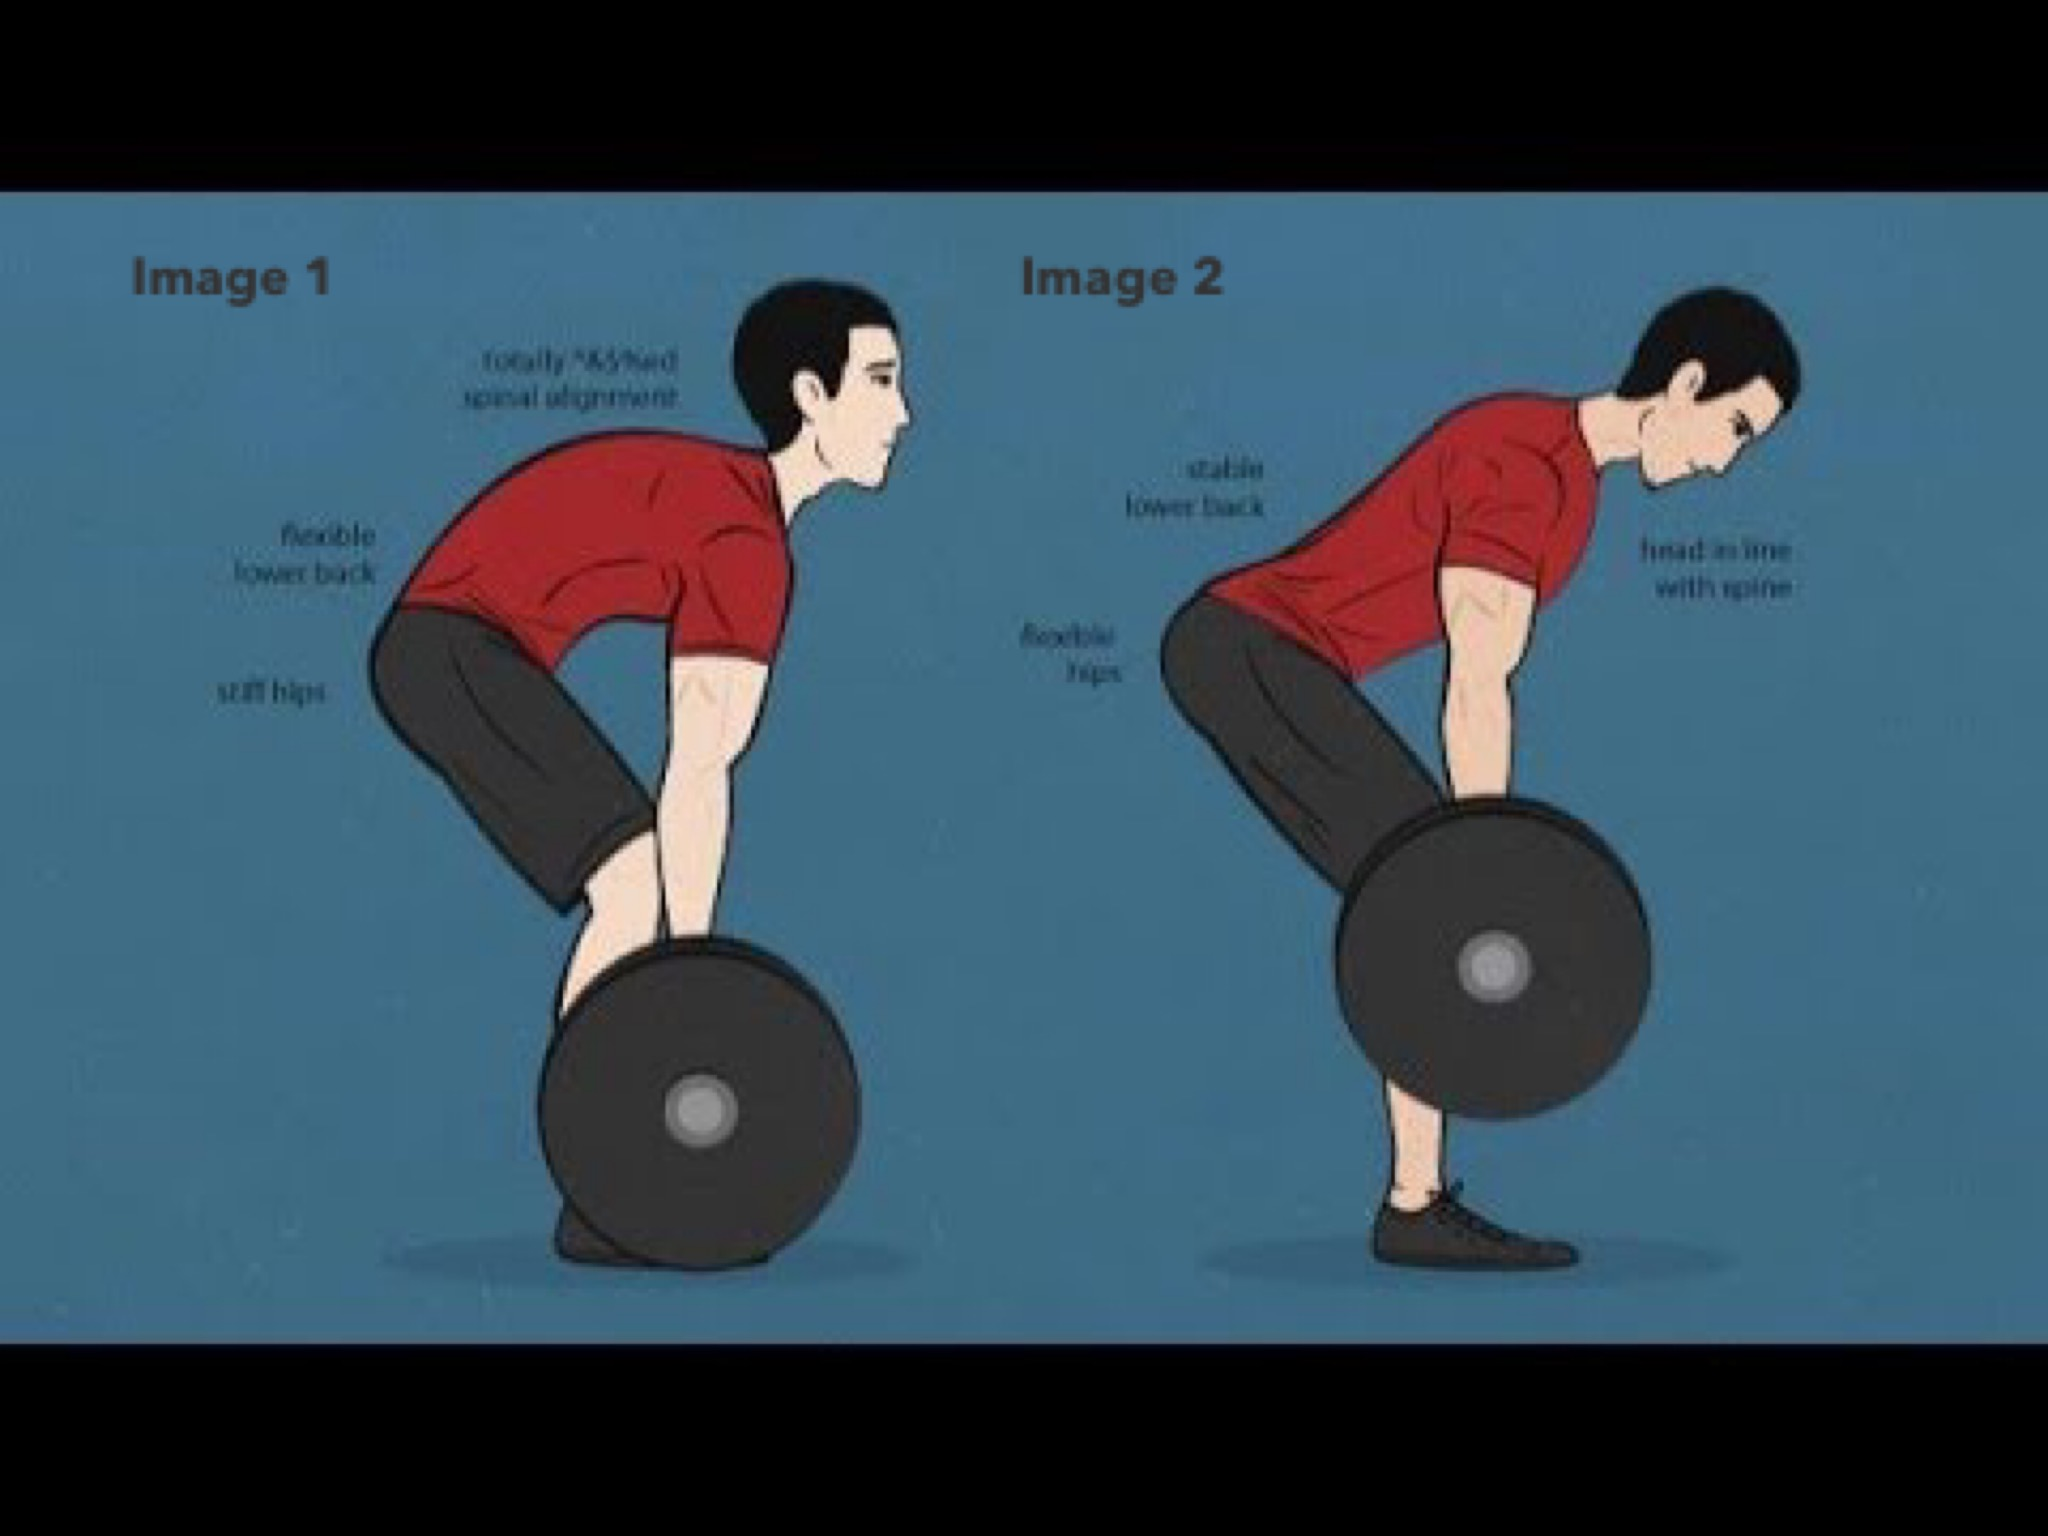 image cred: nothing uglier than bad deadlift form youtube